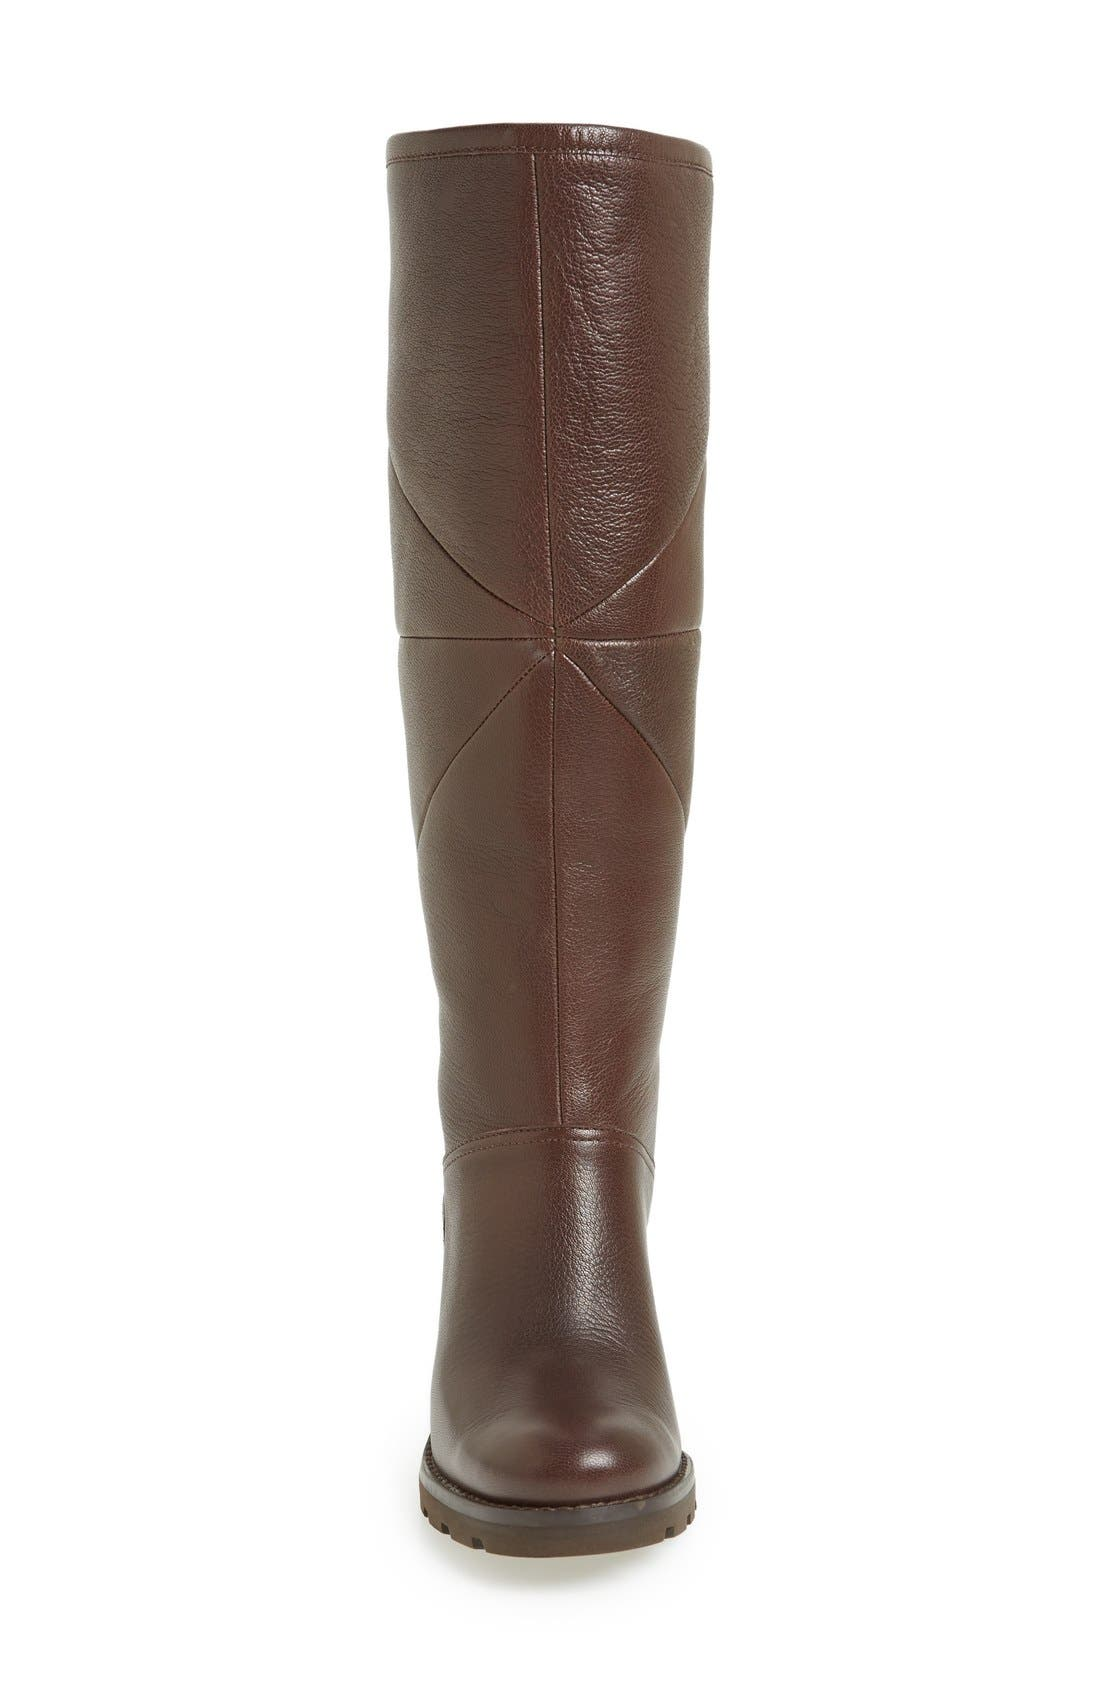 Alternate Image 3  - UGG® 'Avery' Water Resistant Genuine Shearling Lined Leather Boot (Women)